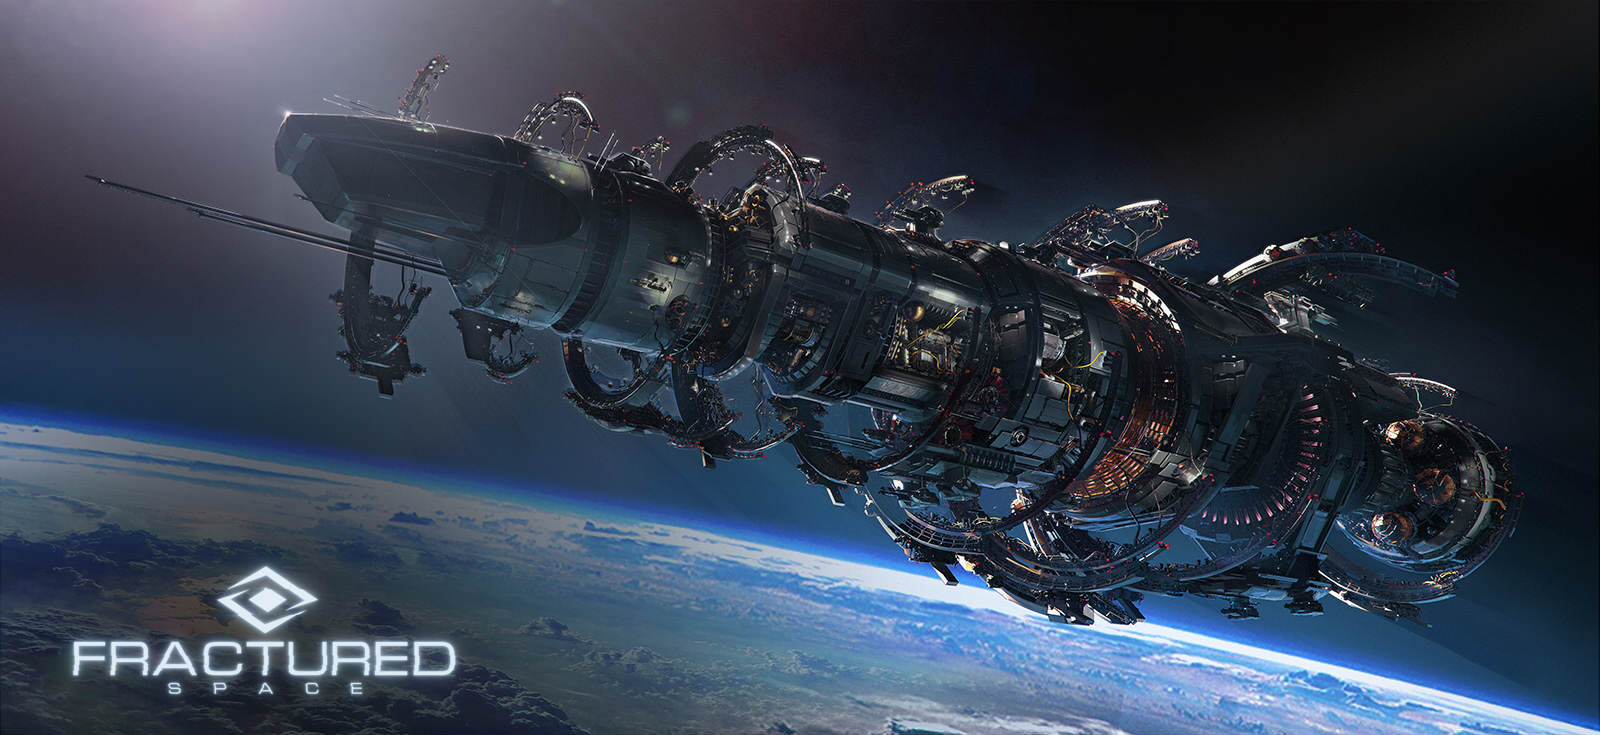 fractured space 1 You Can Get Fractured Space For Free This Weekend